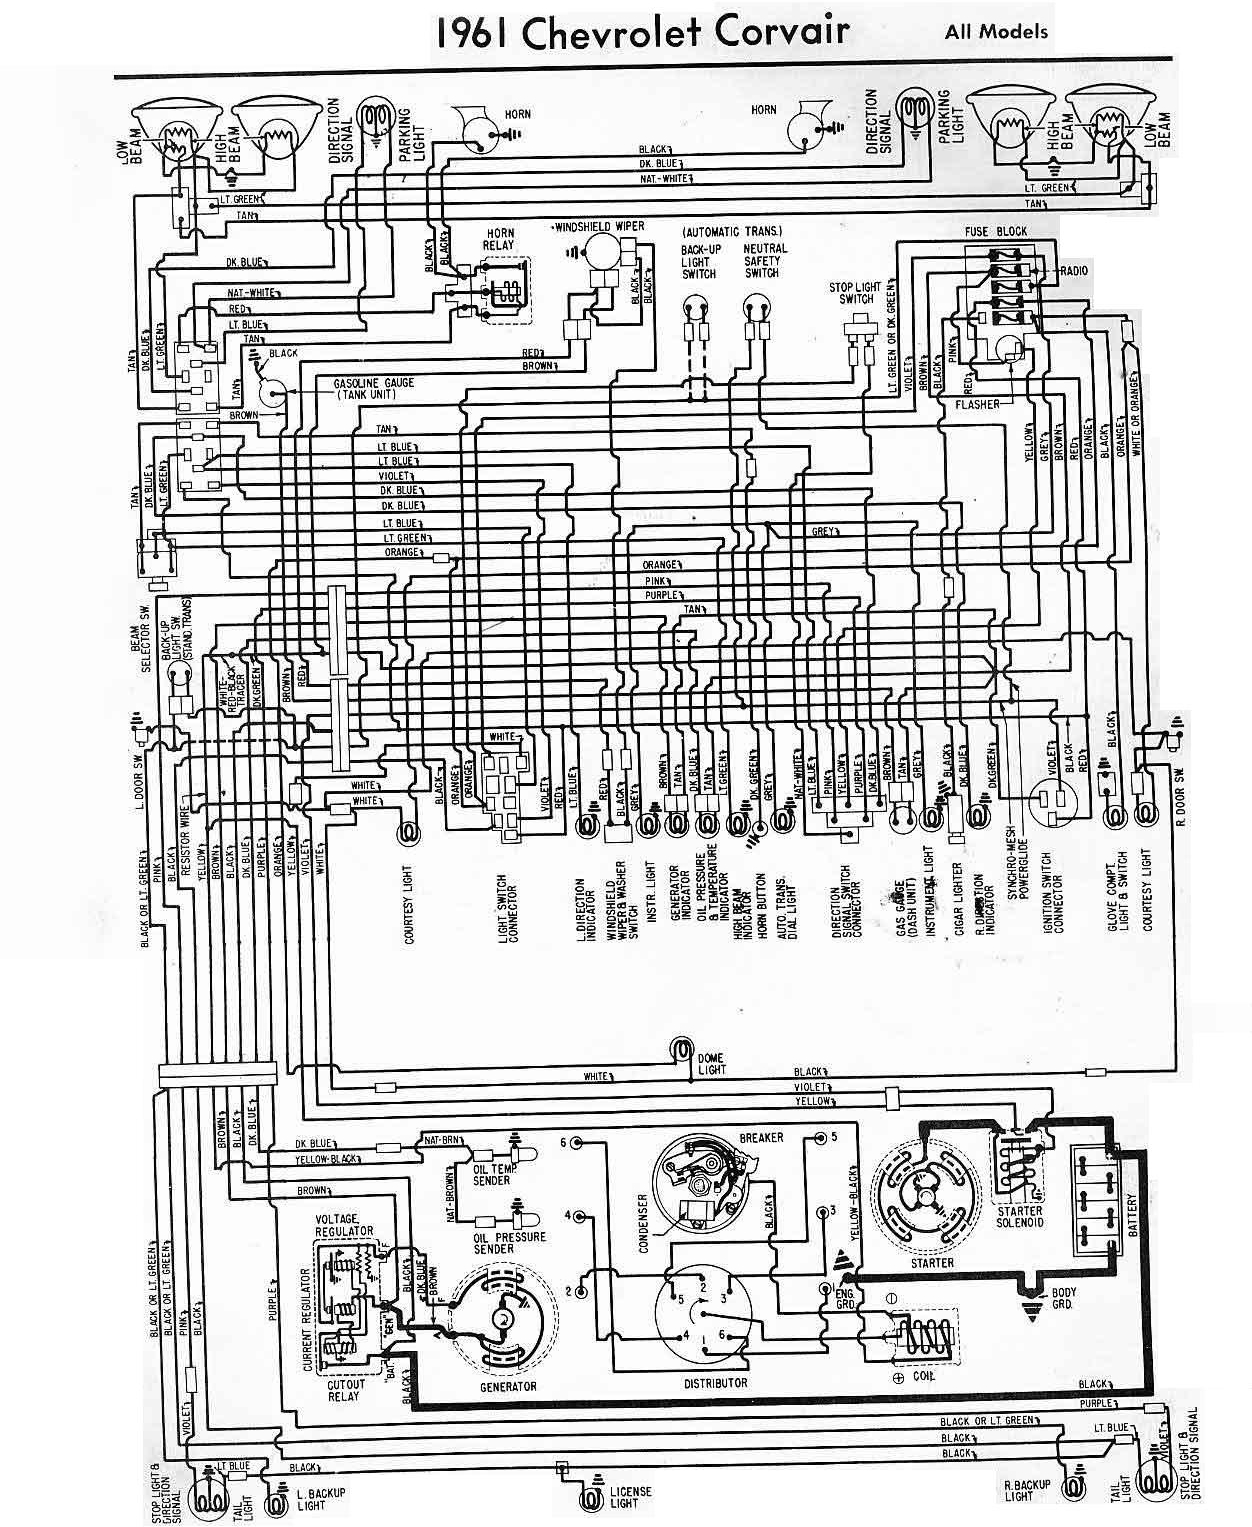 medium resolution of 1961 corvair wiring diagram free wiring diagram for you u2022 corvair motor diagram corvair wiring diagram